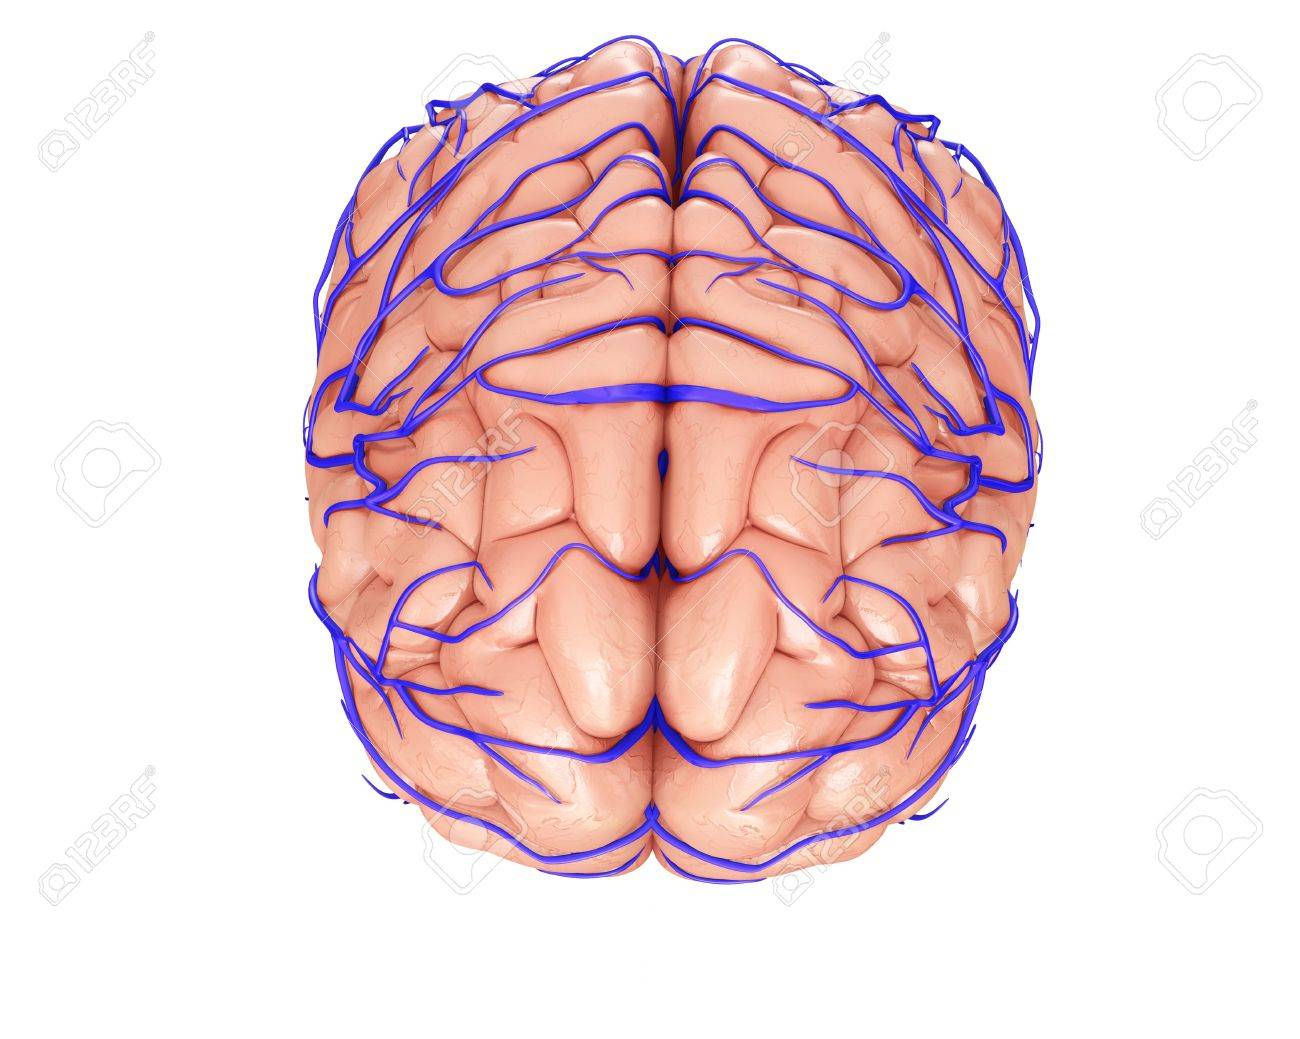 Brain Veins And Anatomy, Illustration Stock Photo, Picture And ...